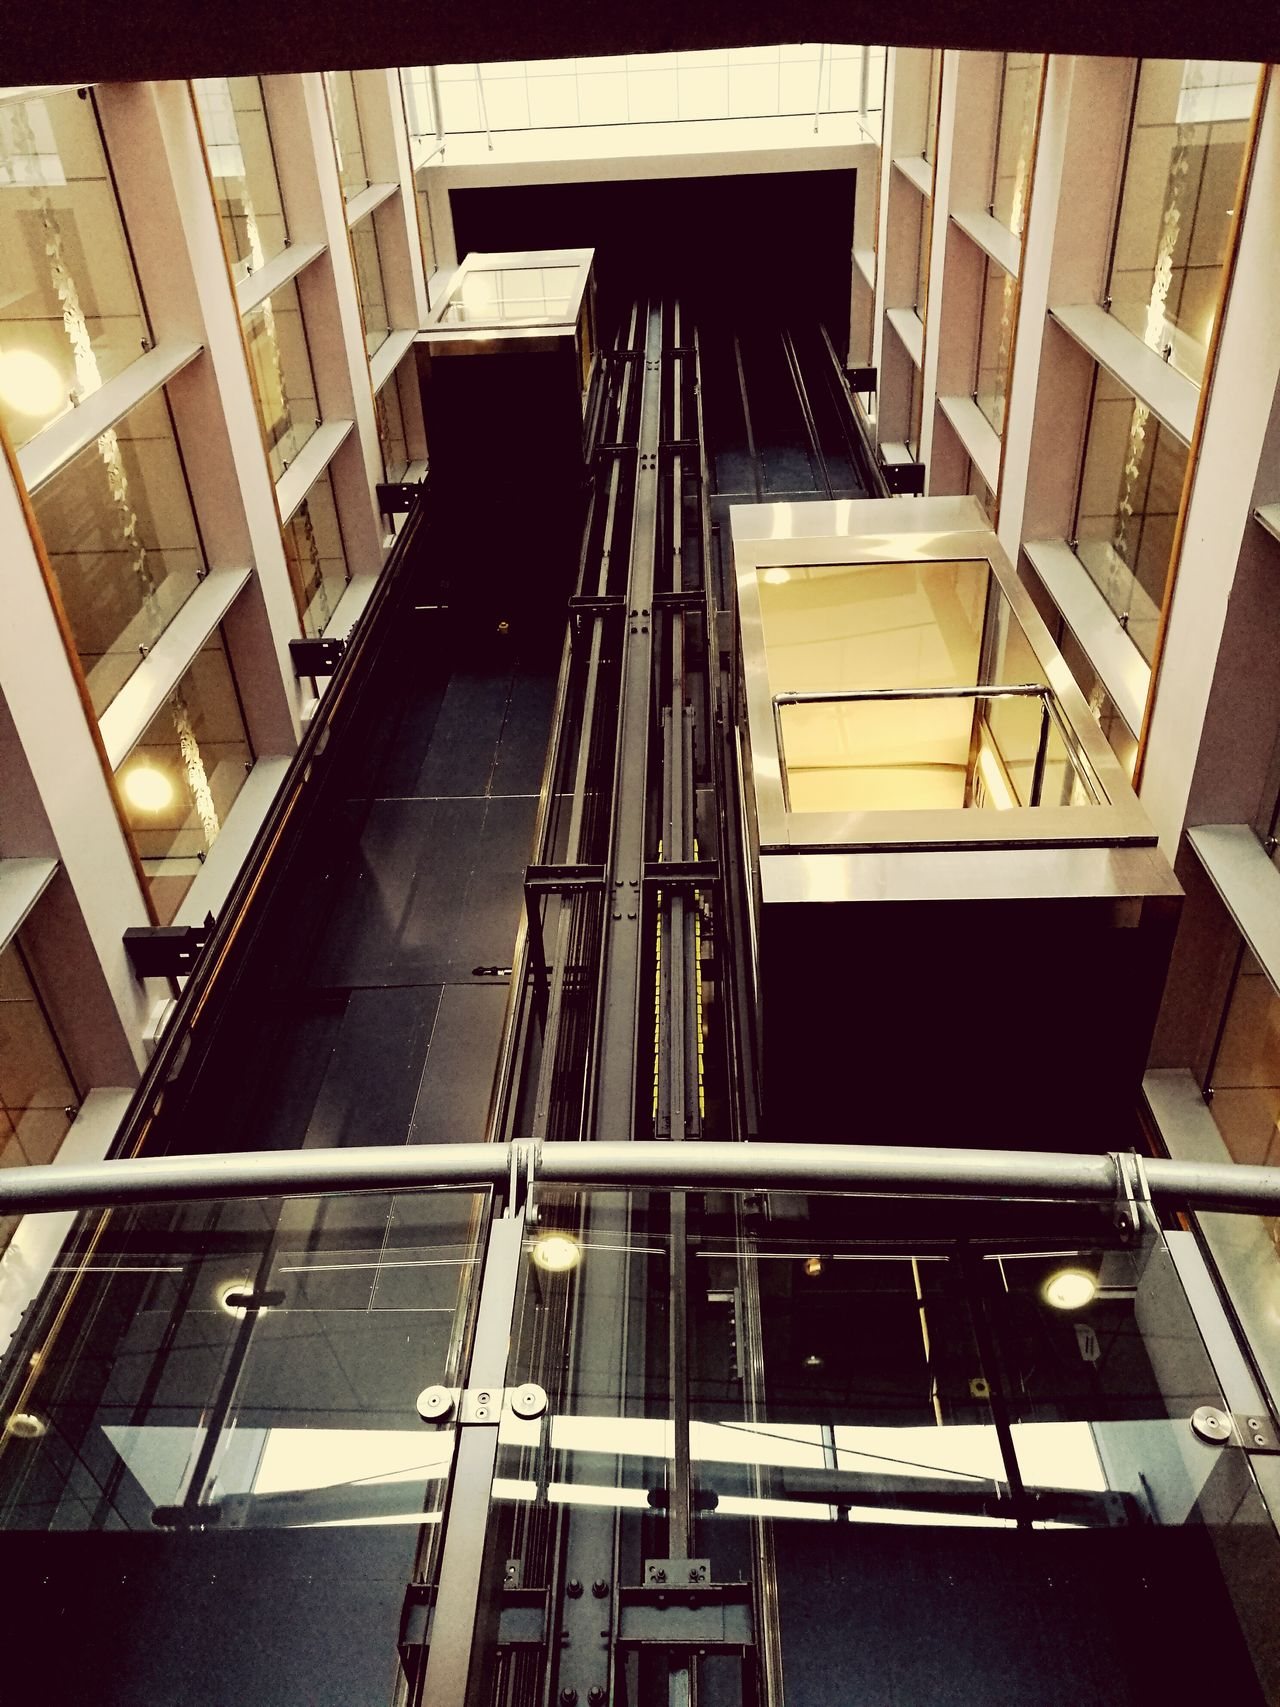 Why not take the lift? Elavator Indoors  Metal Built Structure Architecture Lift Shaft Lifts Liftshaft Elavatorfun Elavatorboys Internal View Whiteshotel Boltonwanderers Adapted To The City